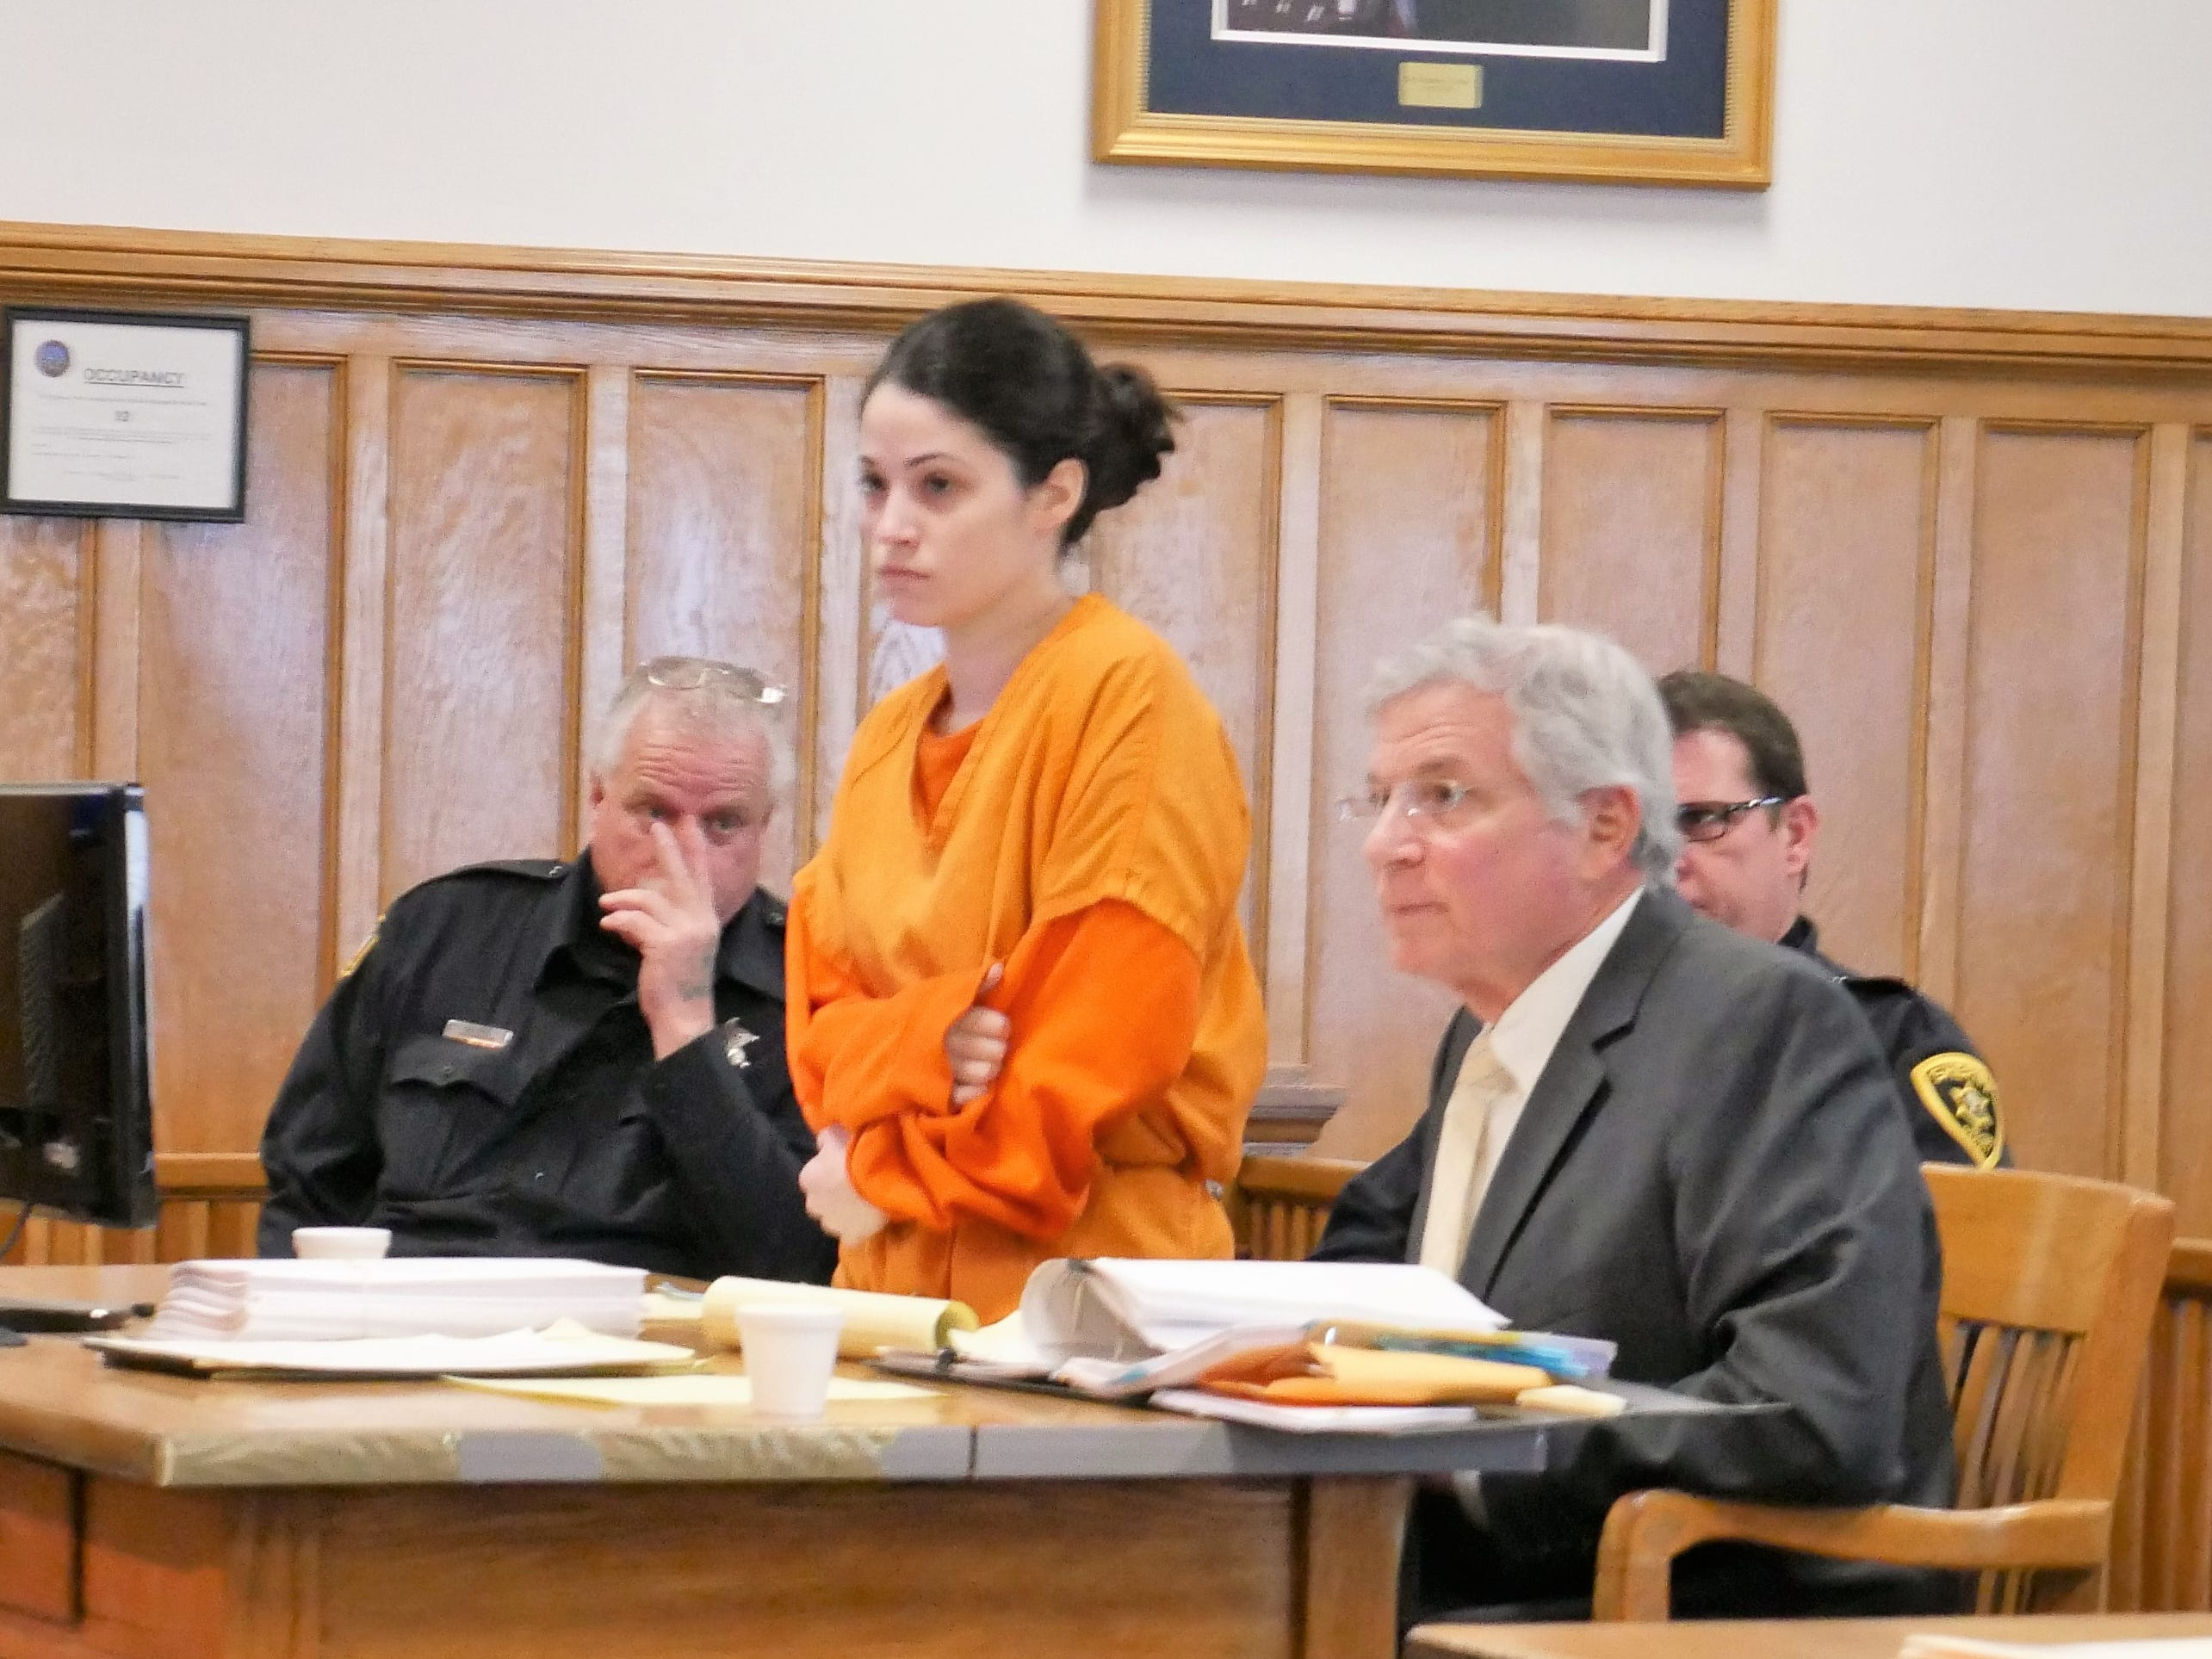 Nicole Addimando defense aims to preclude statements to police